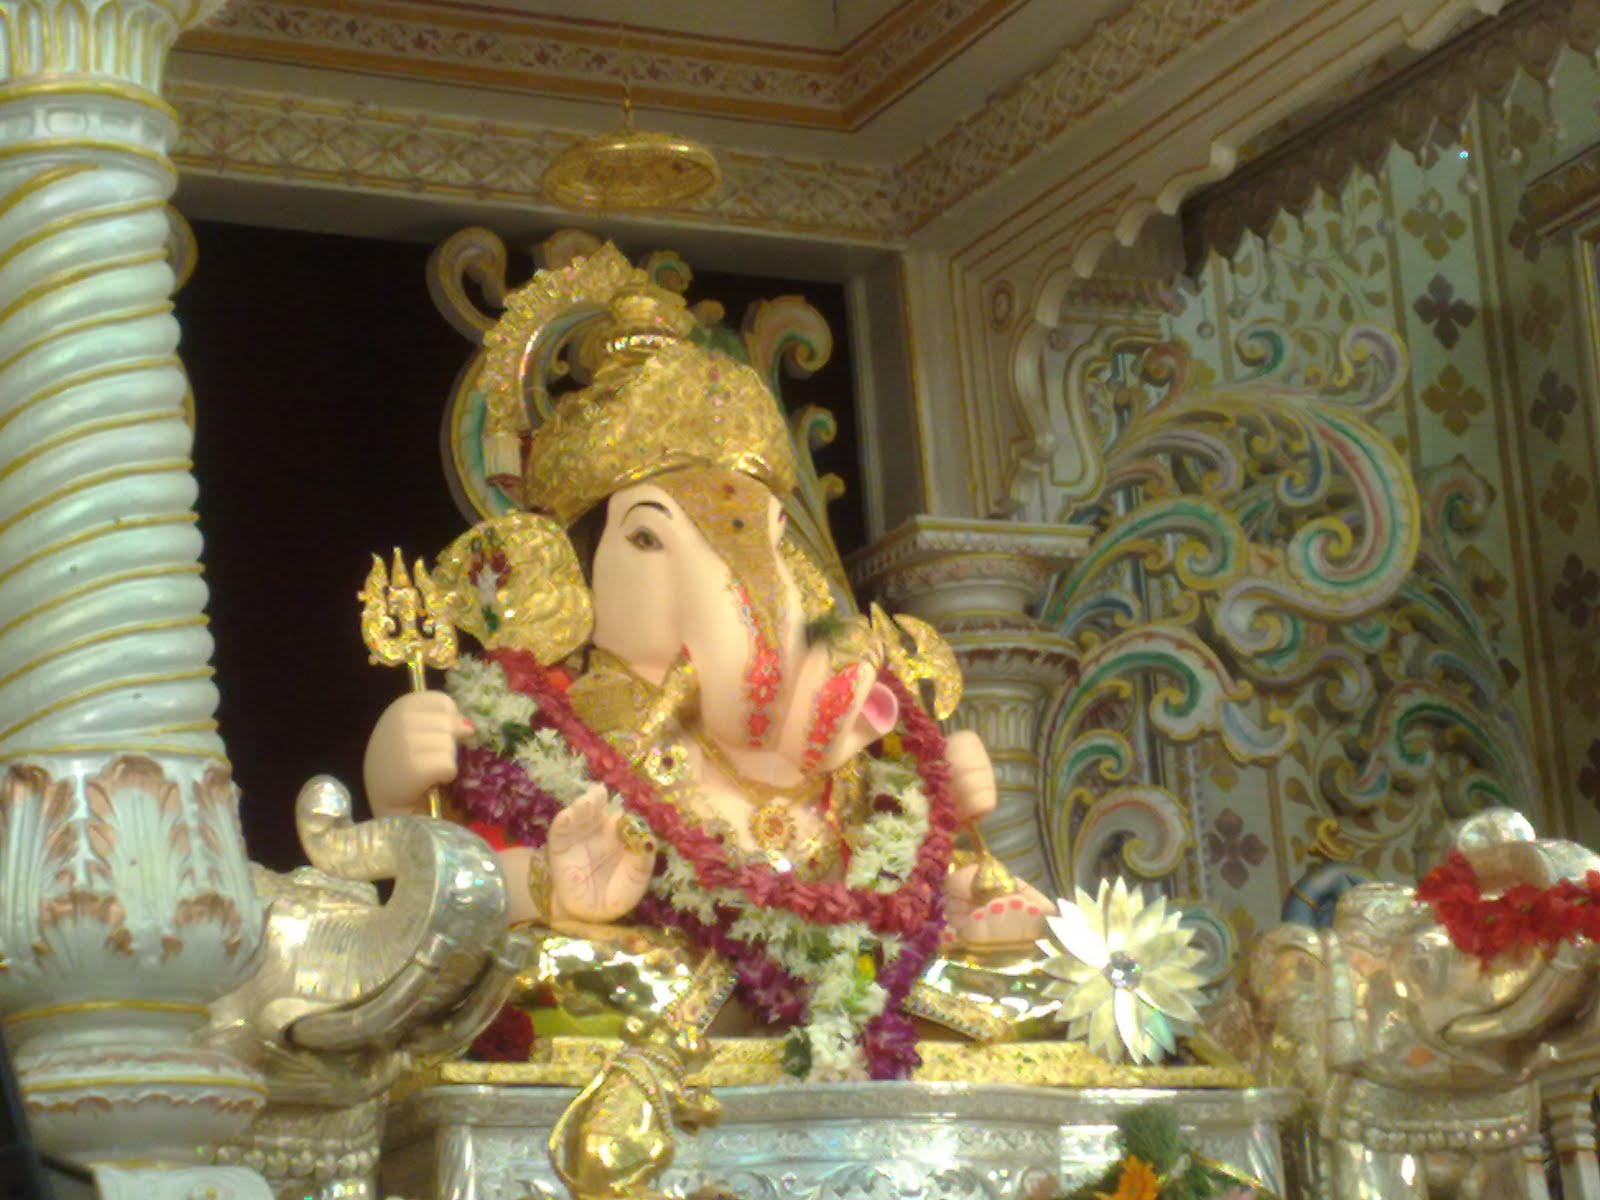 New-blog-pics: Dagdusheth Ganpati Wallpaper Free Download